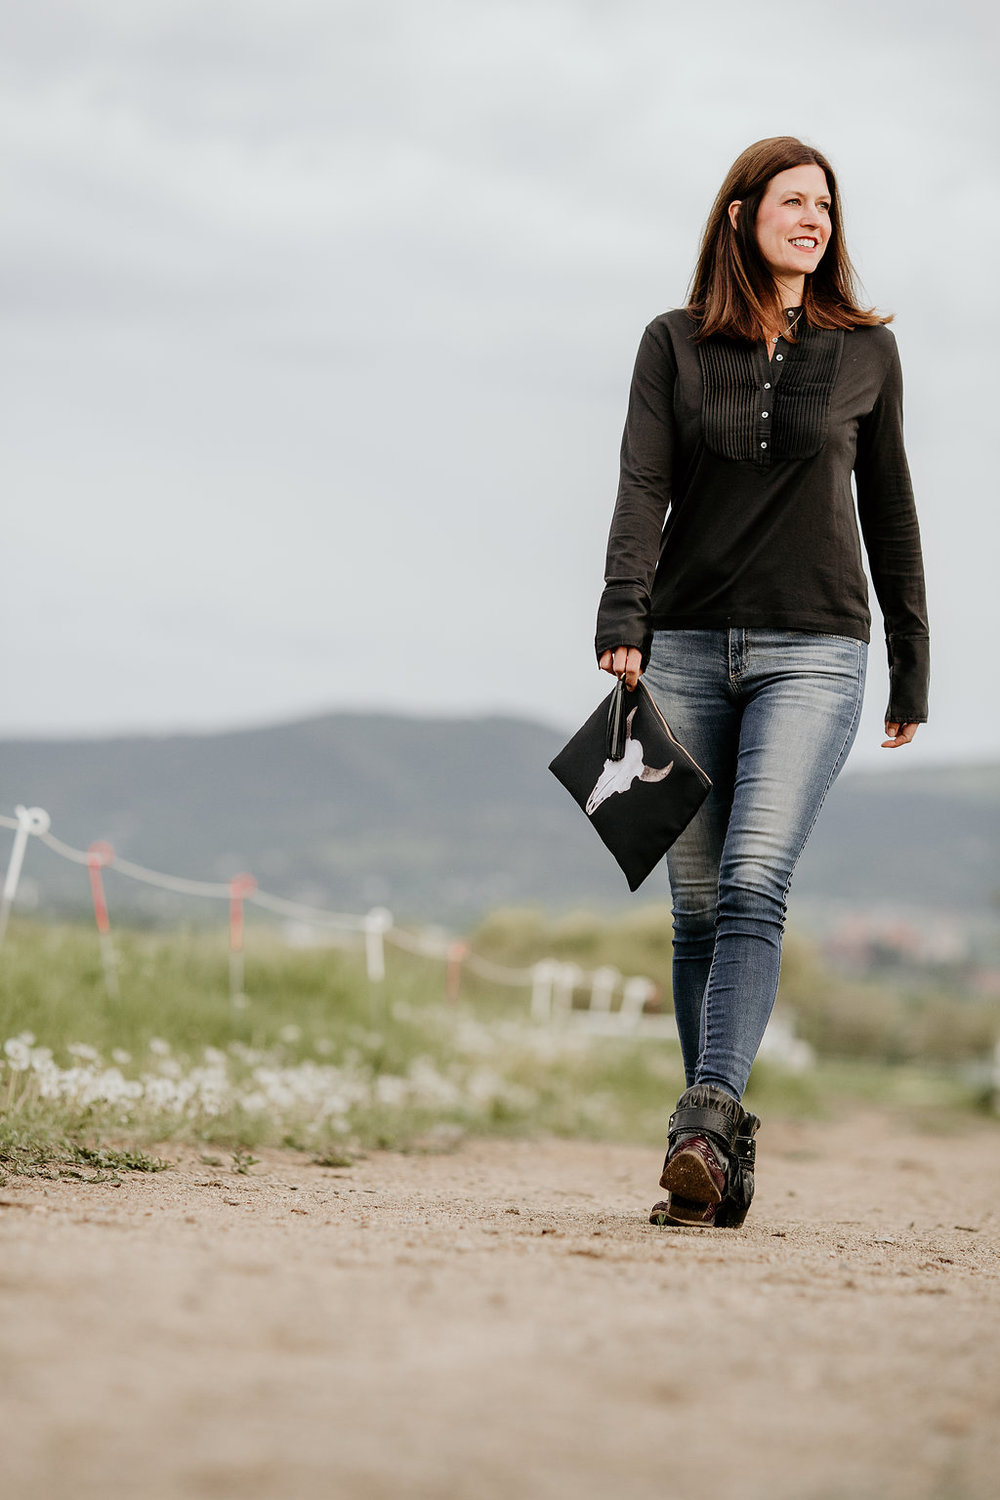 Montana Bones clutch and Canty Boots